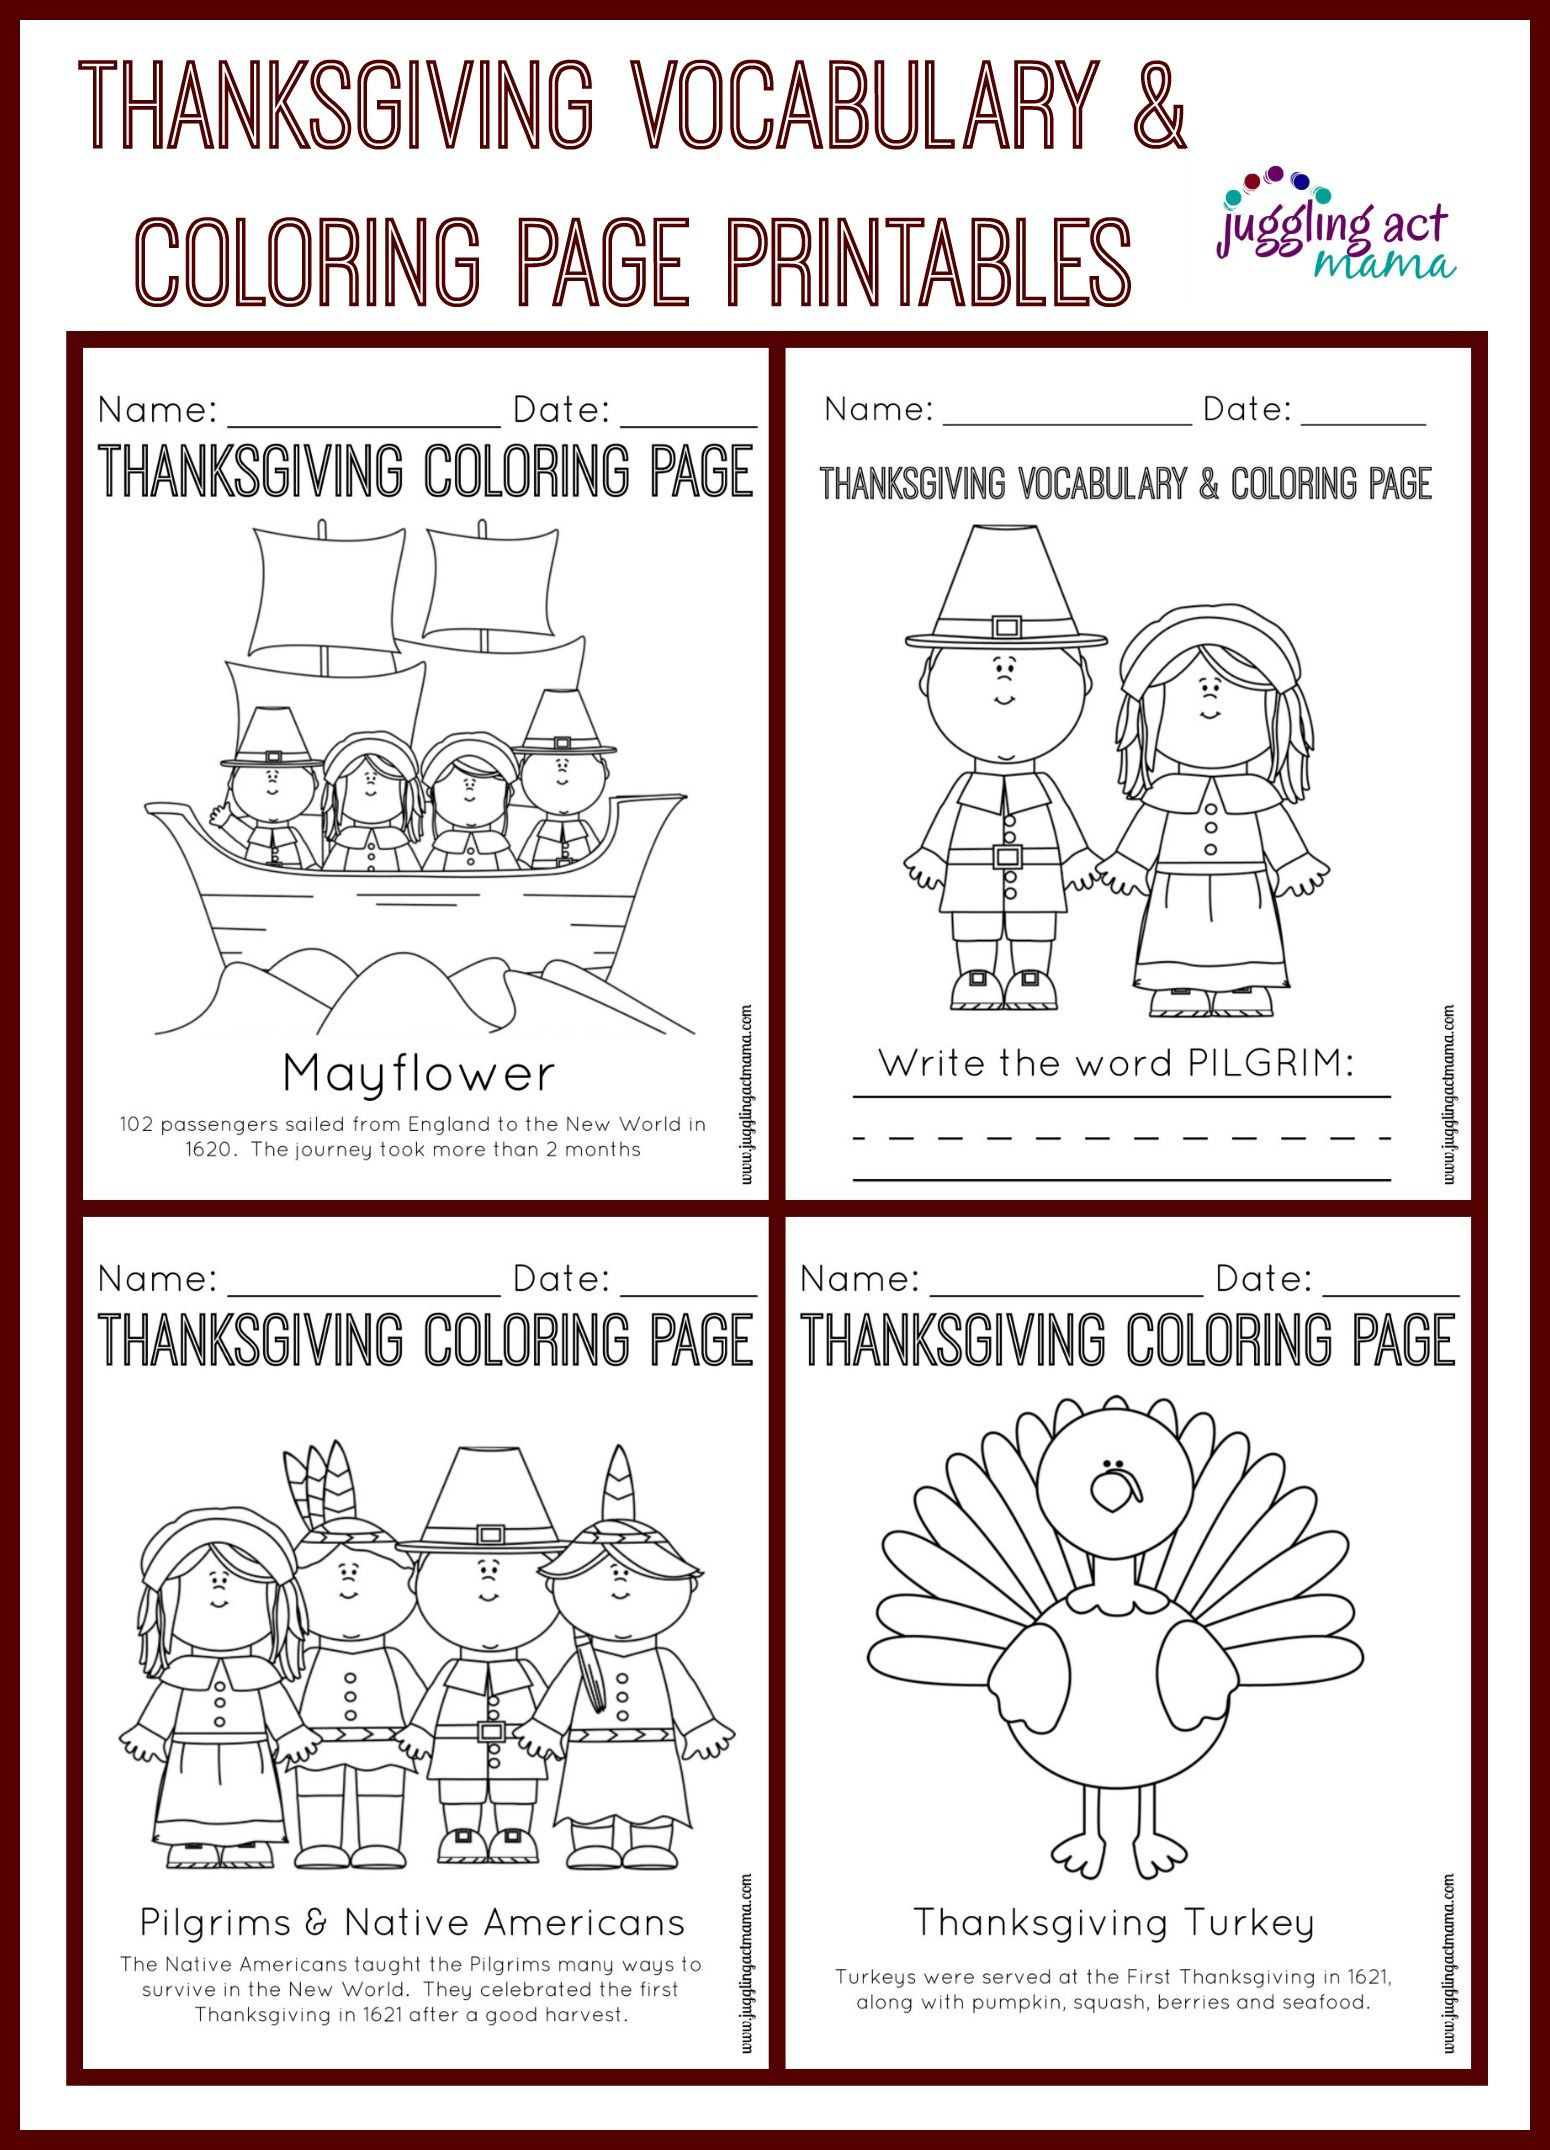 Thanksgiving Vocabulary And Coloring Page Printables Thanksgiving Coloring Pages Thanksgiving Vocabulary Printable Thanksgiving Crafts [ 2150 x 1550 Pixel ]